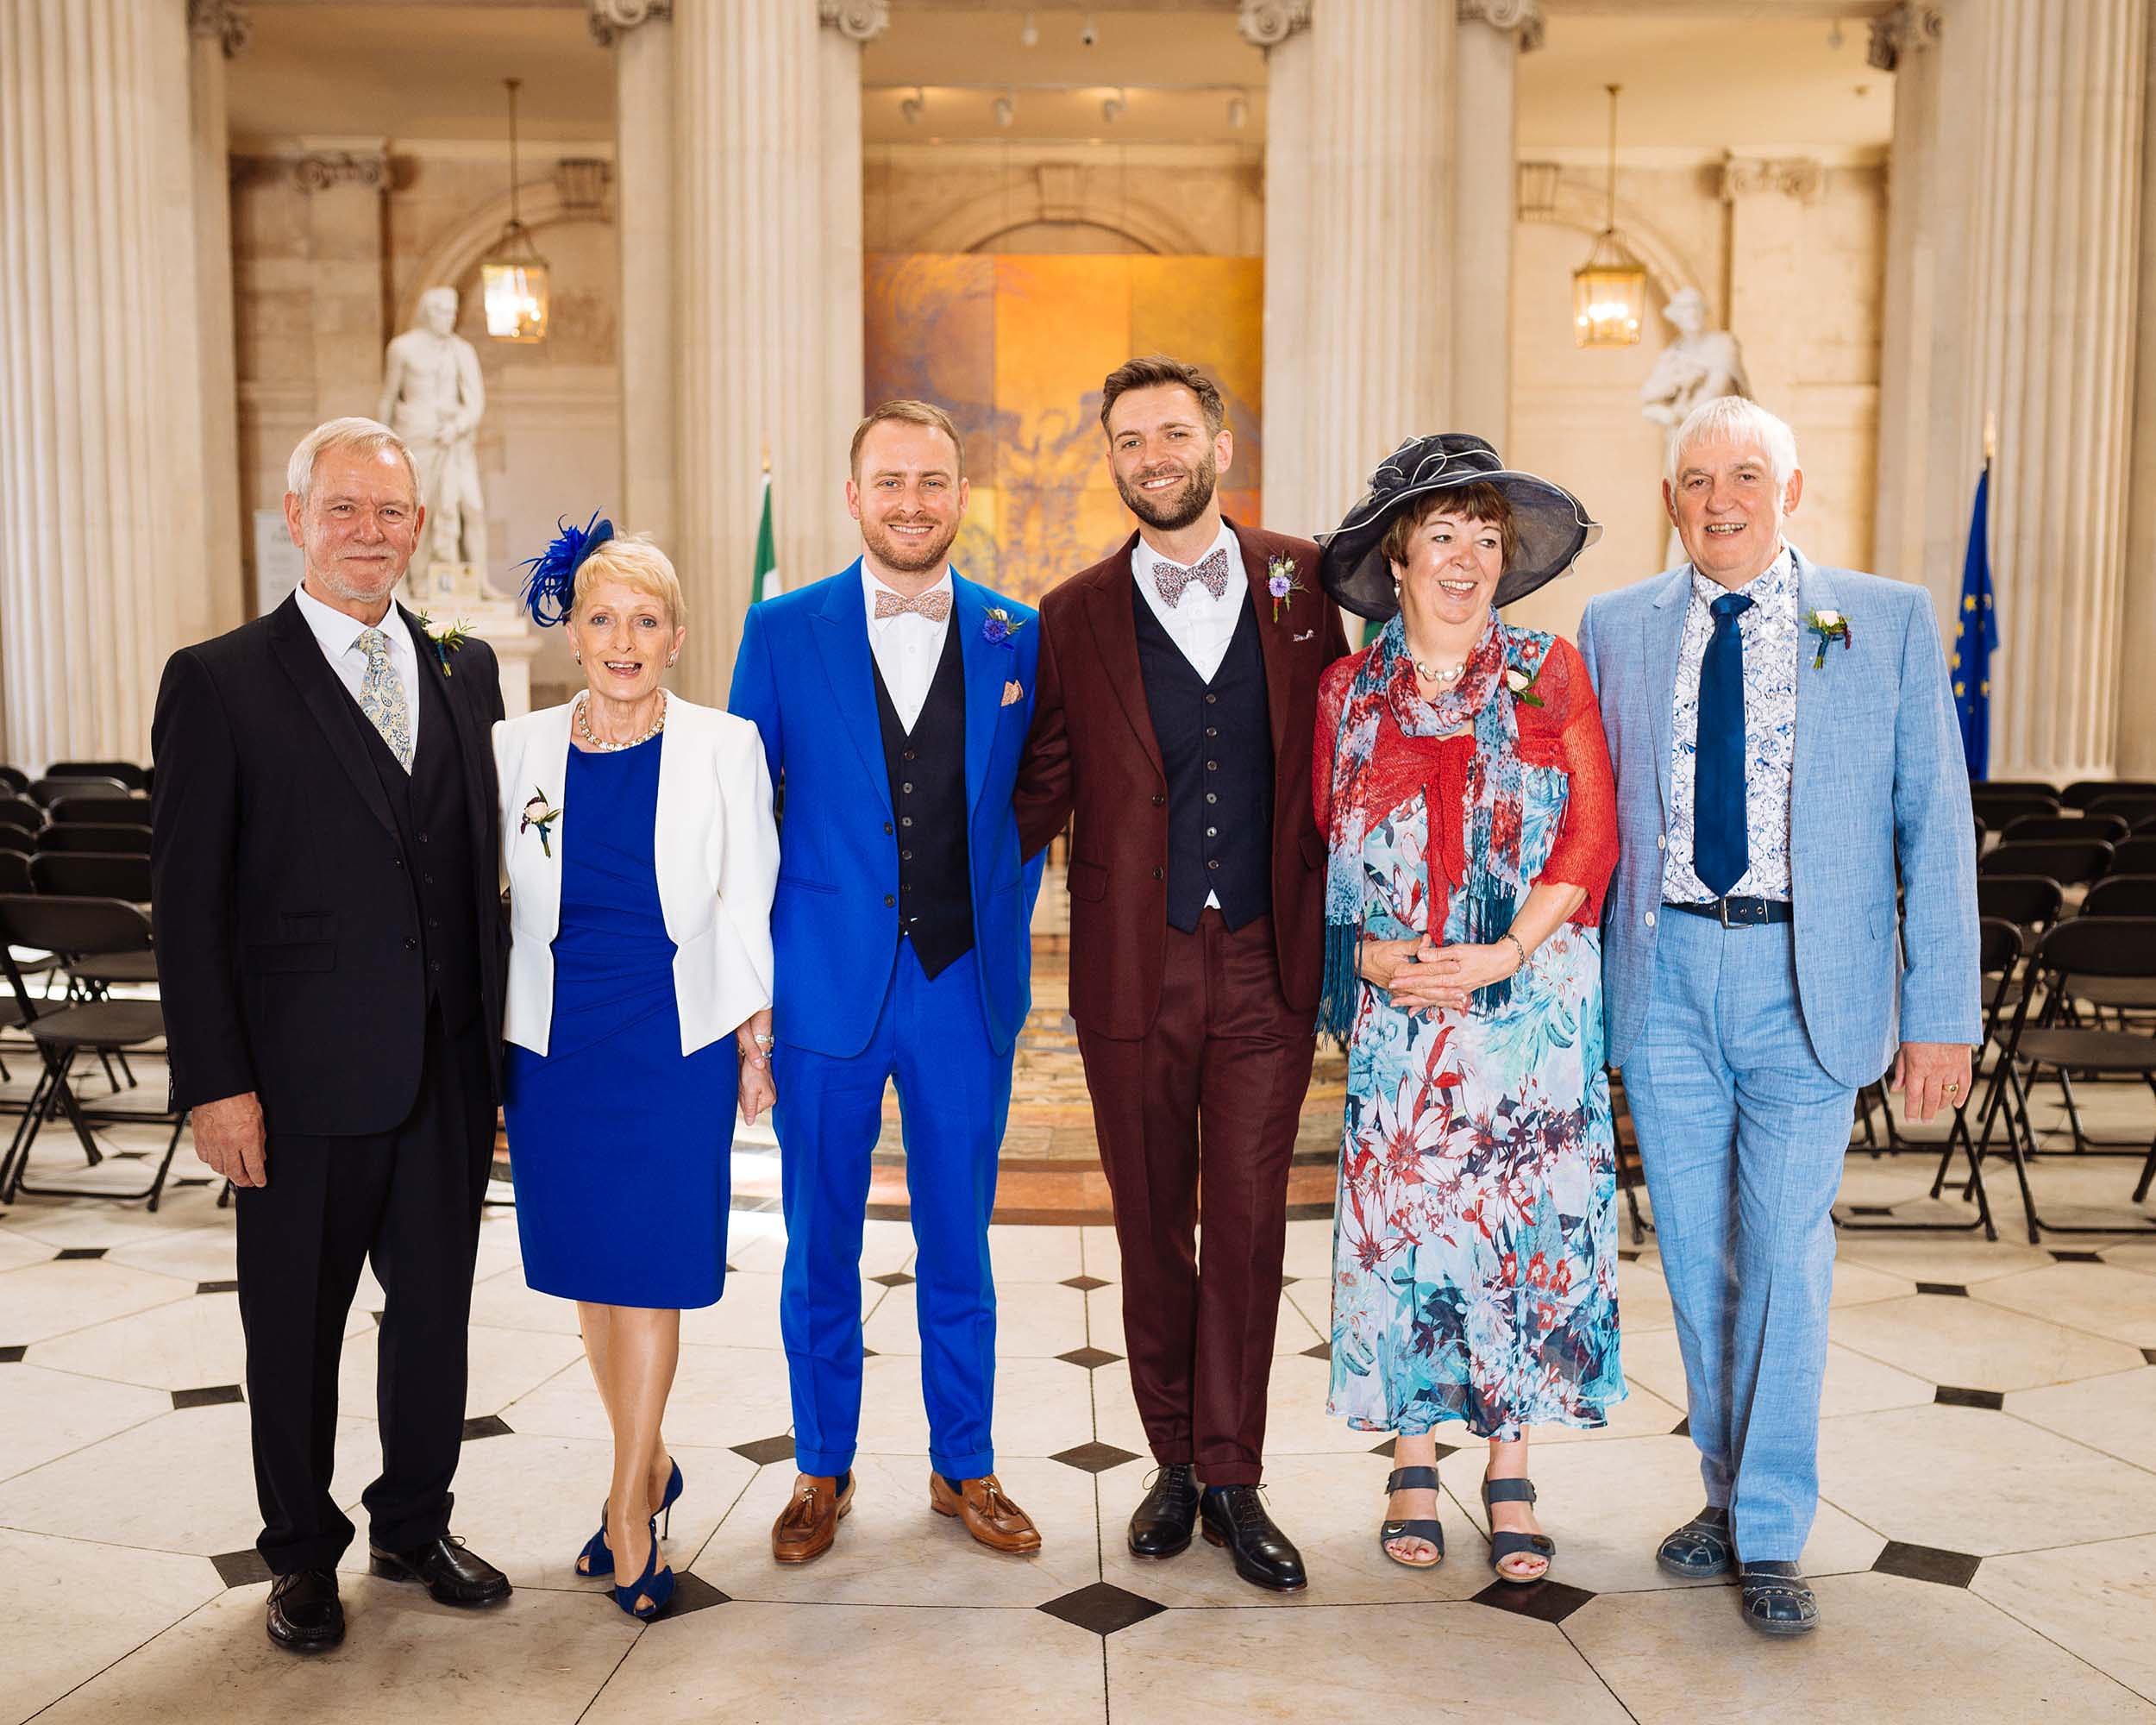 group-shot-gay-wedding-ireland-city-hall-15